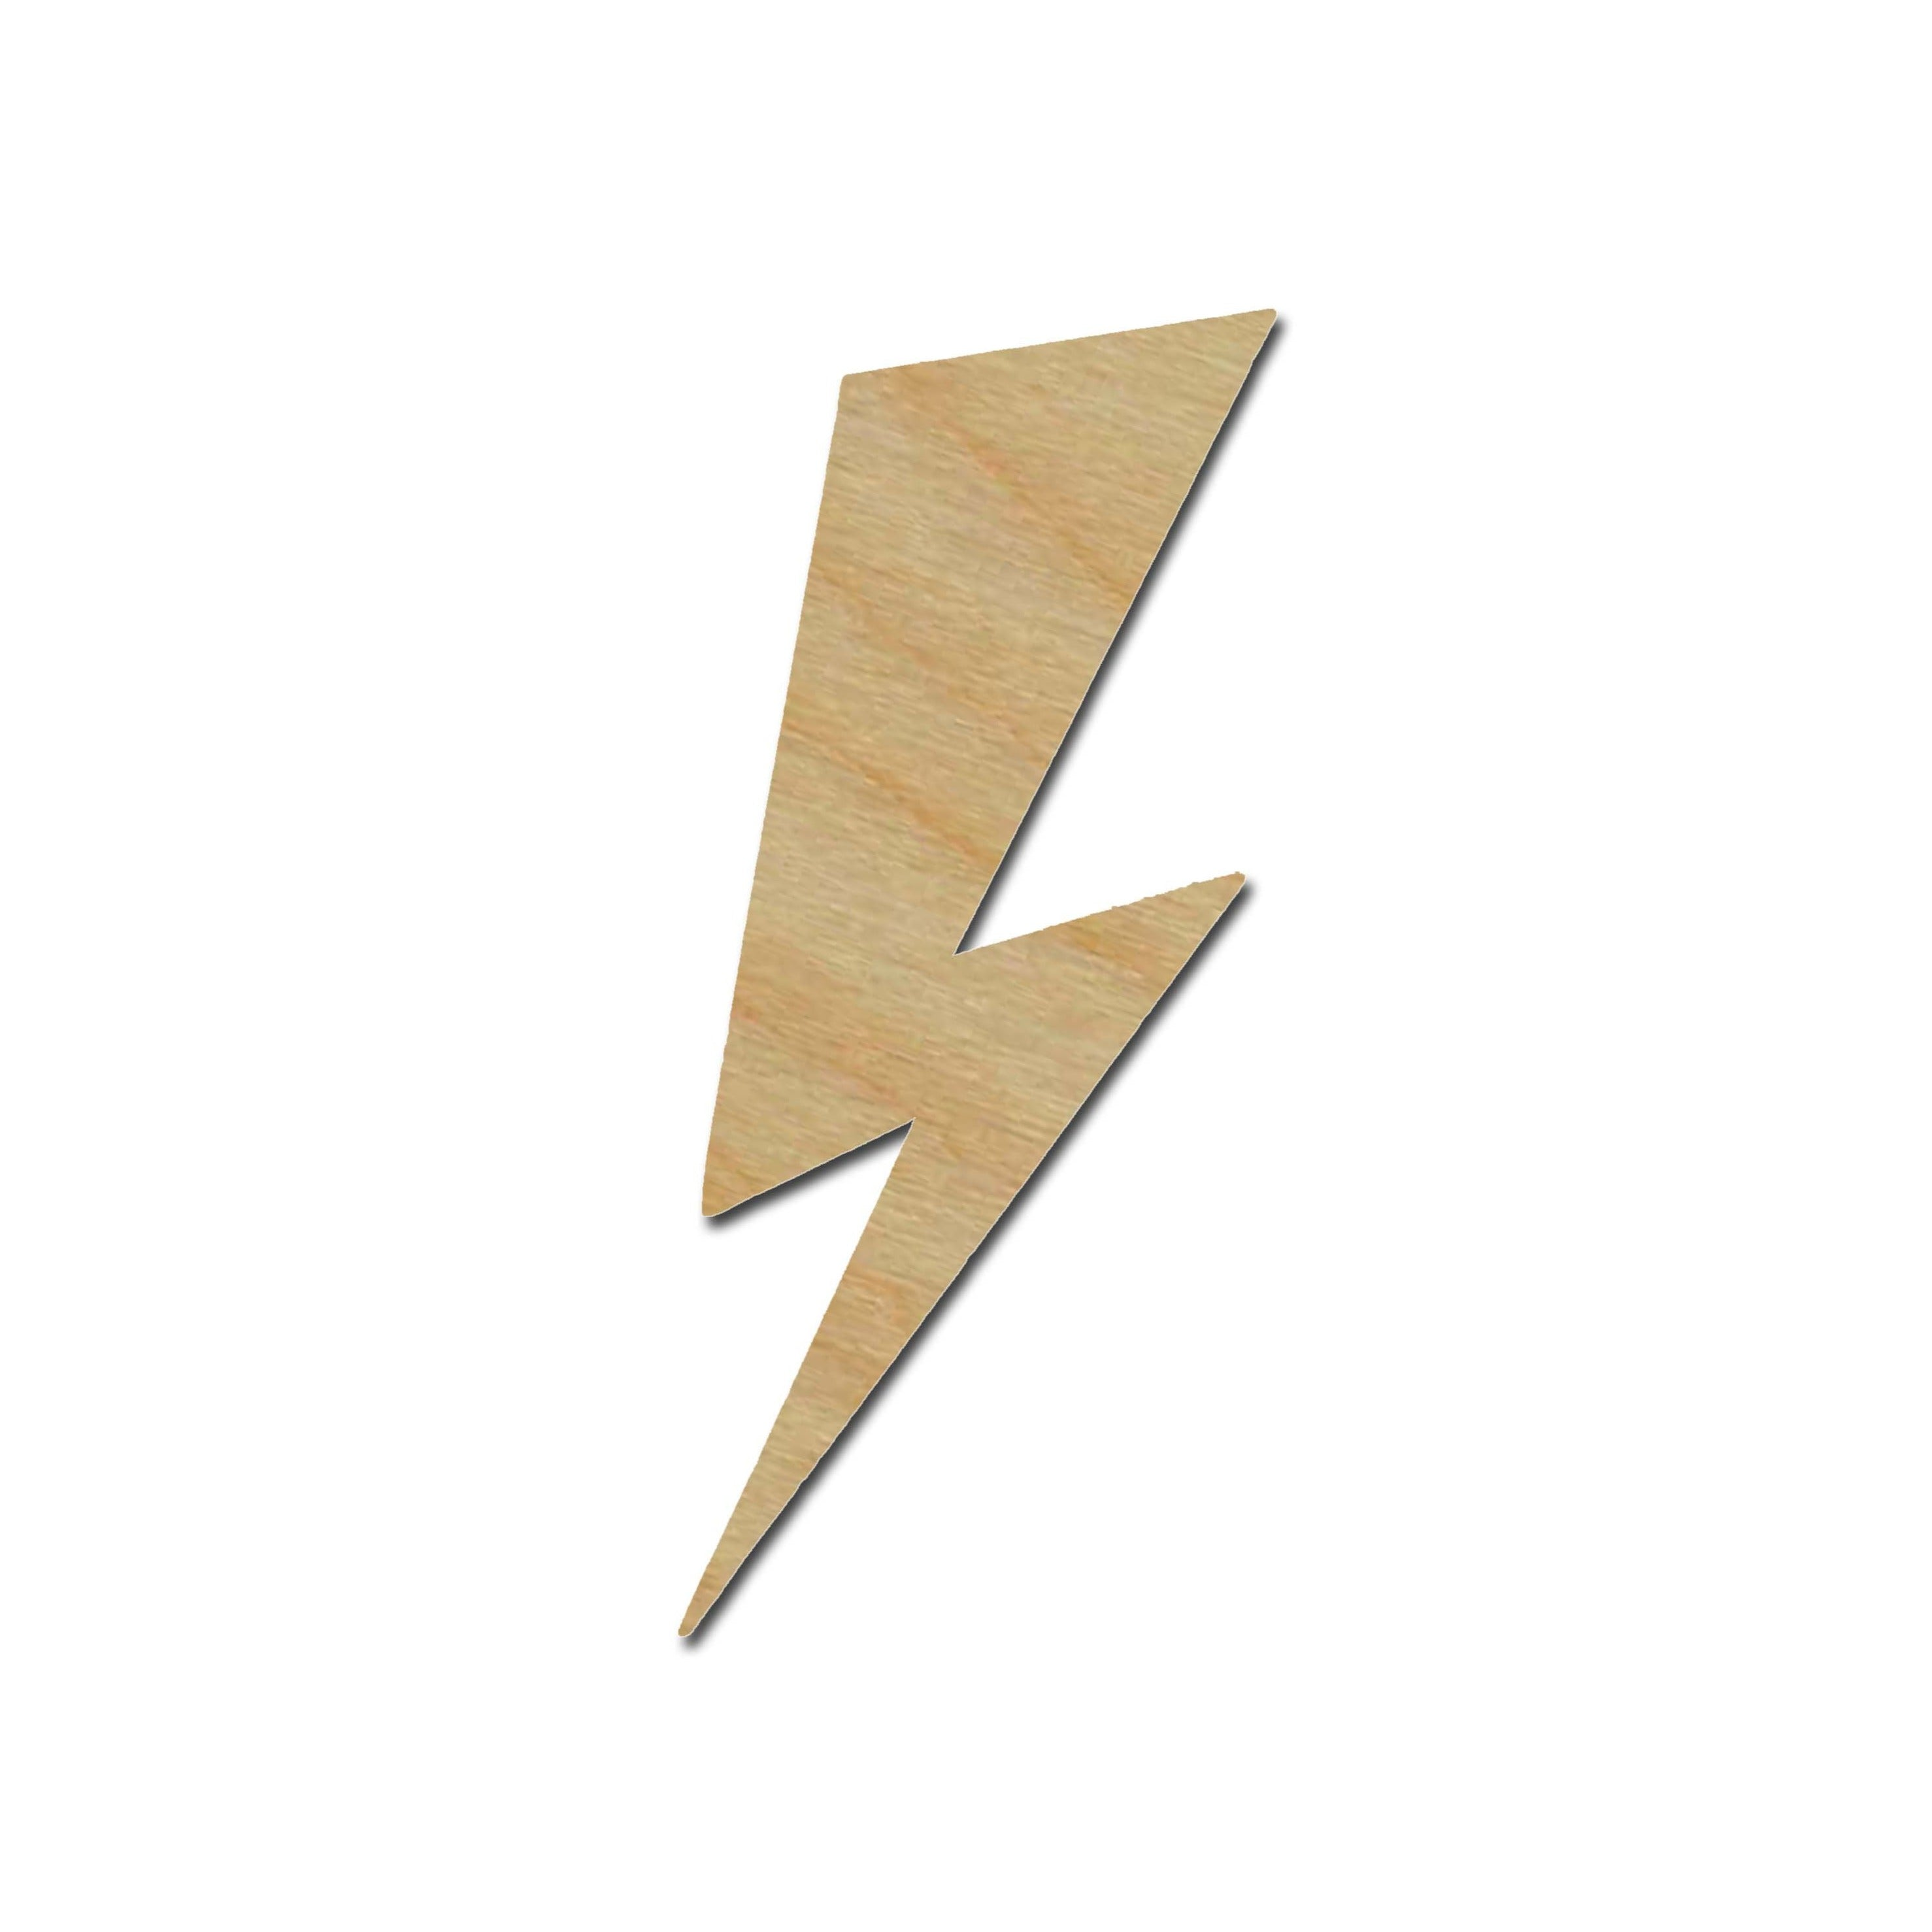 Lighting Bolt Wood Cut Out